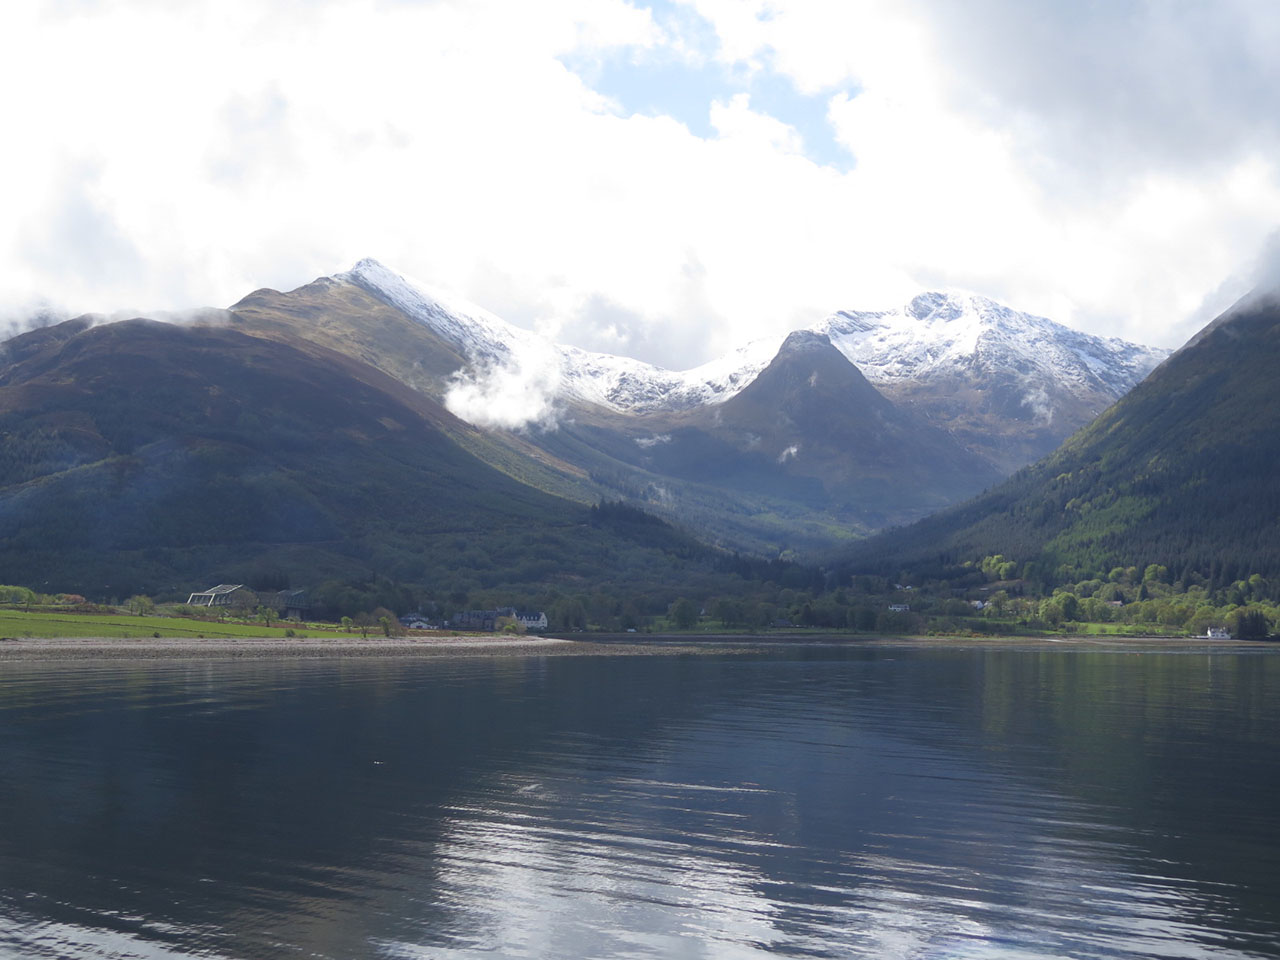 View across Loch Leven at Sgorr Donhuill and Sgorr Dearg